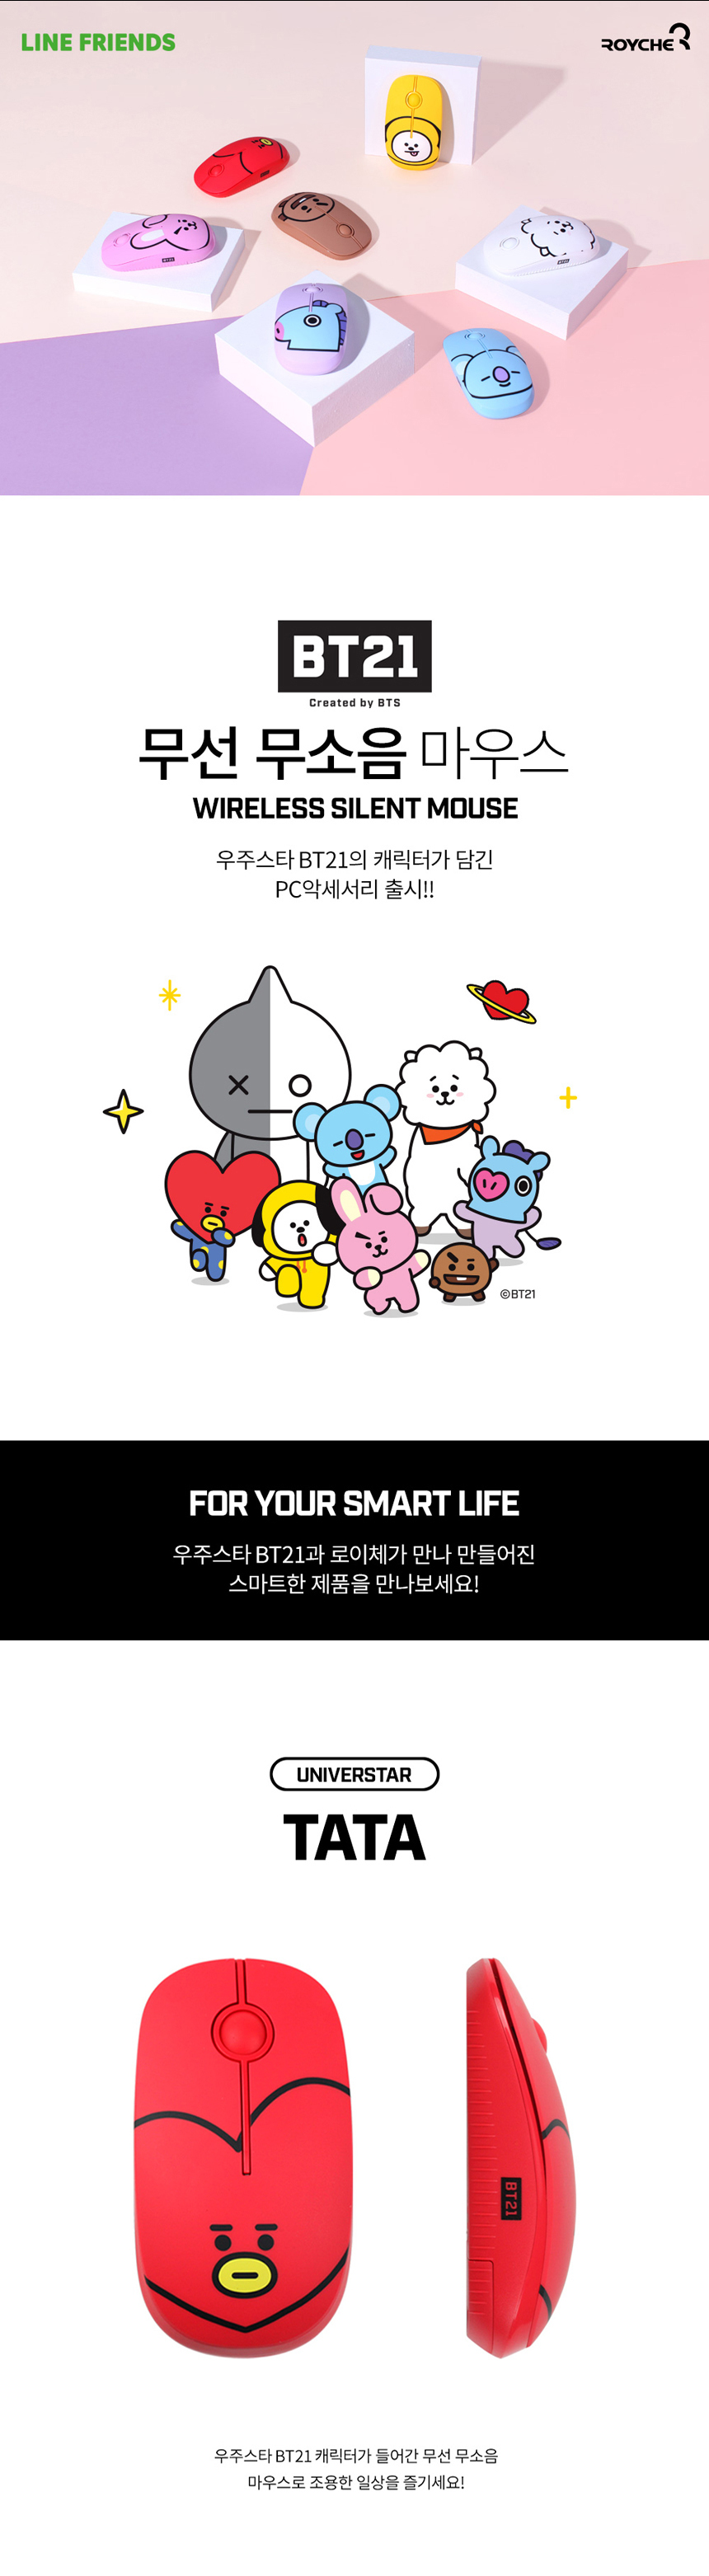 bt21_gm_mouse_01.jpg